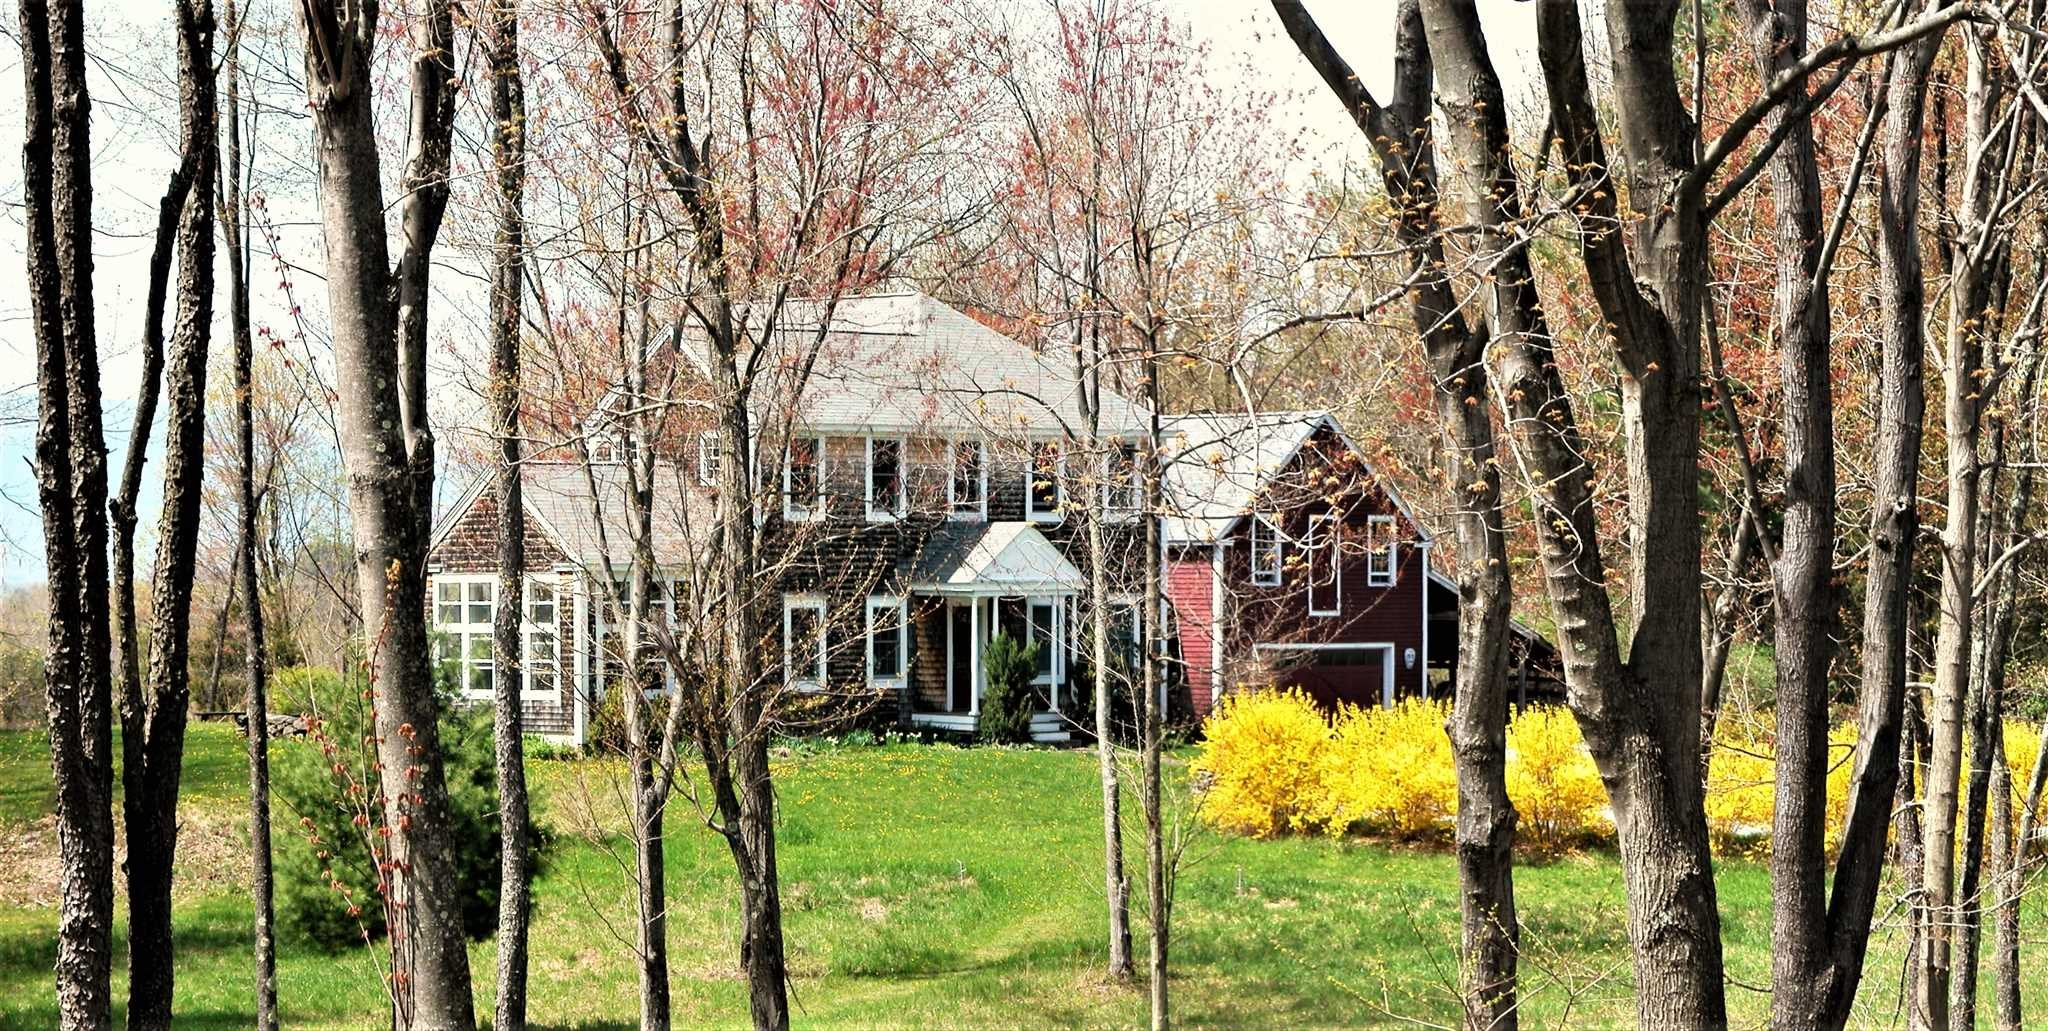 48 WILLIAMS RD, Red Hook, NY 12571